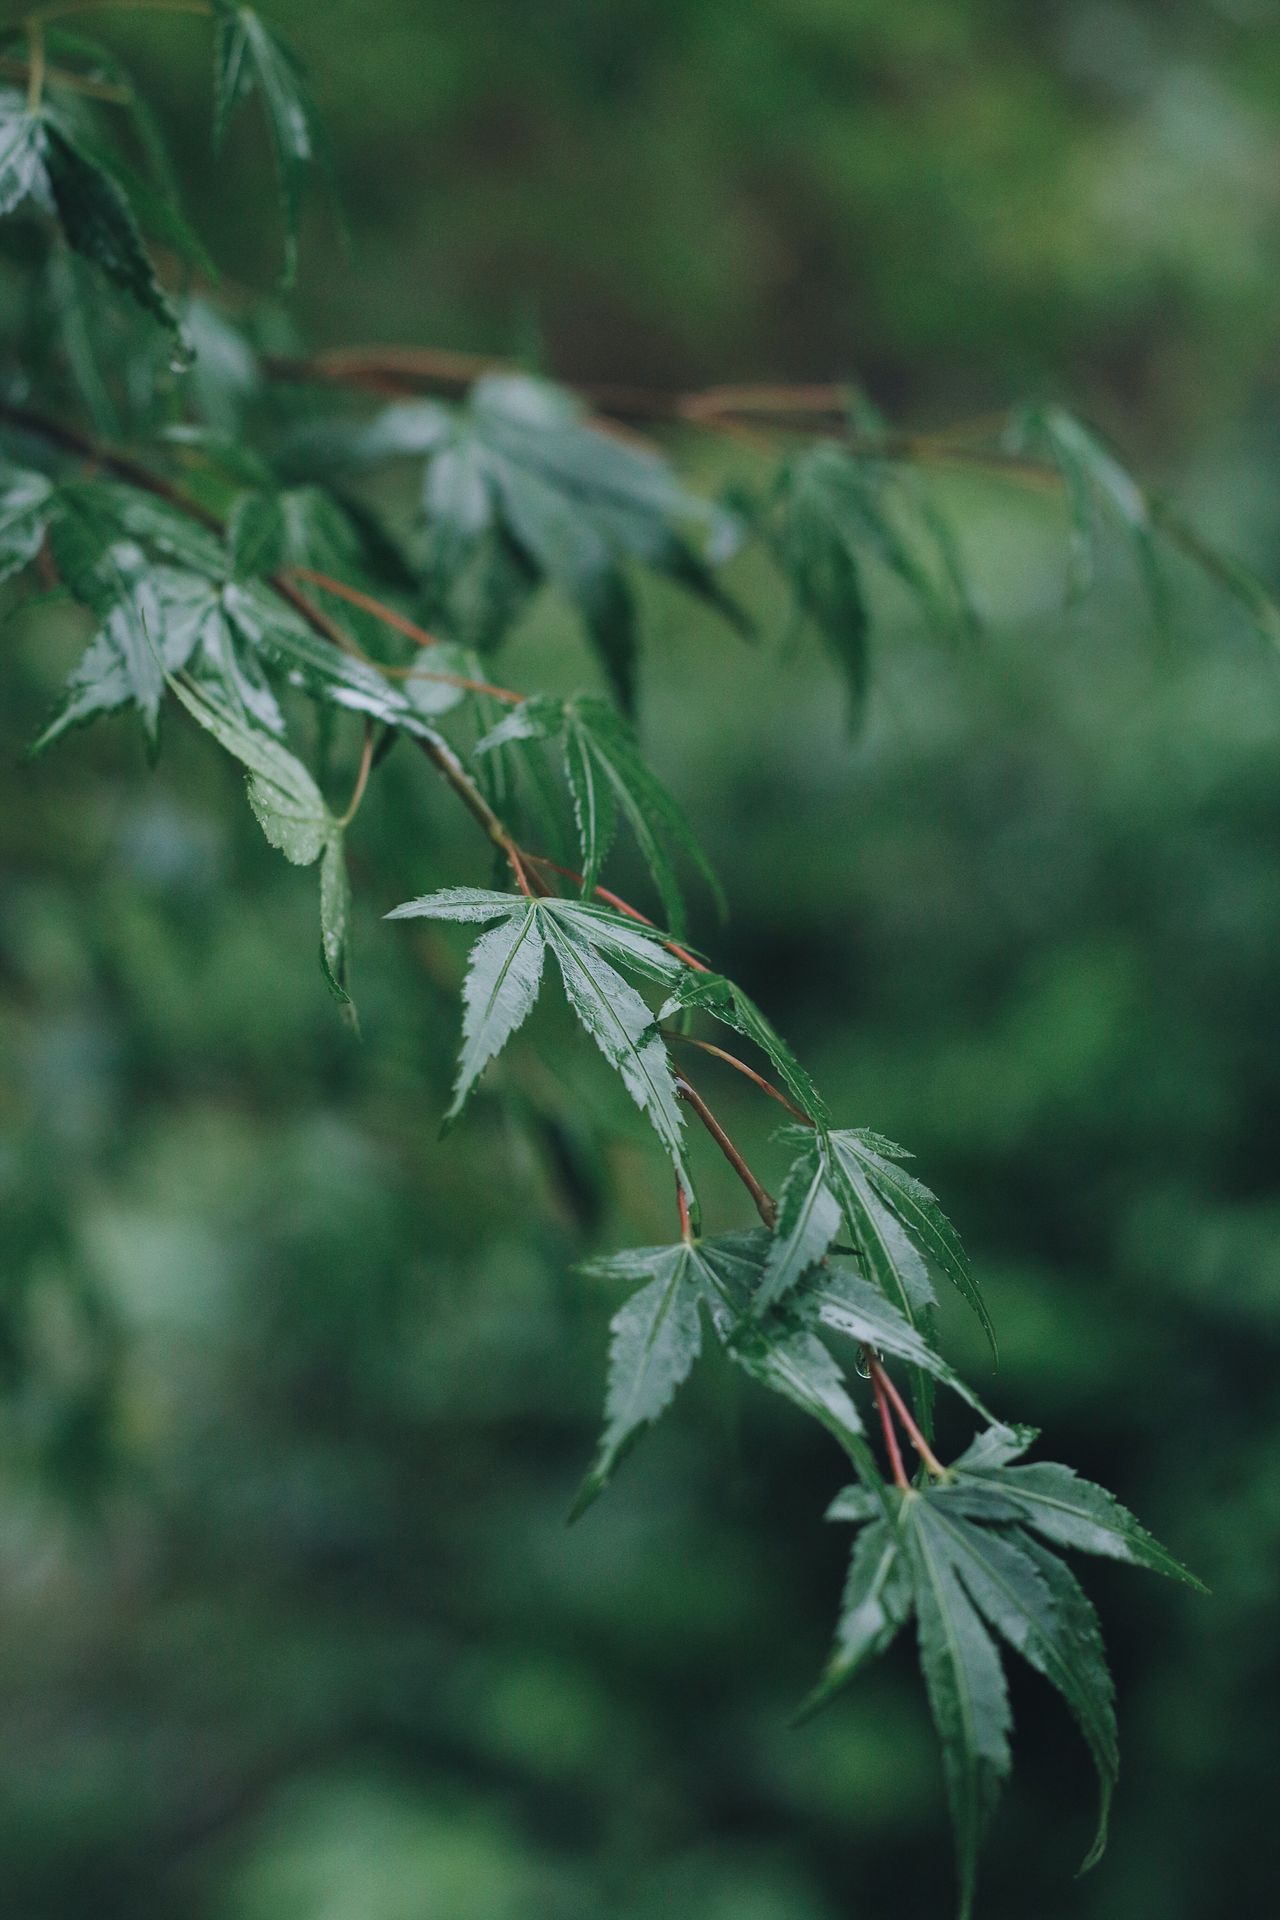 Leaf Green Color Plant Nature Focus On Foreground Growth No People Outdoors Day Close-up Fragility Beauty In Nature Freshness From My Point Of View EyeEmNewHere EyeEm Nature Lover EyeEm Gallery Maple Maple Leaf